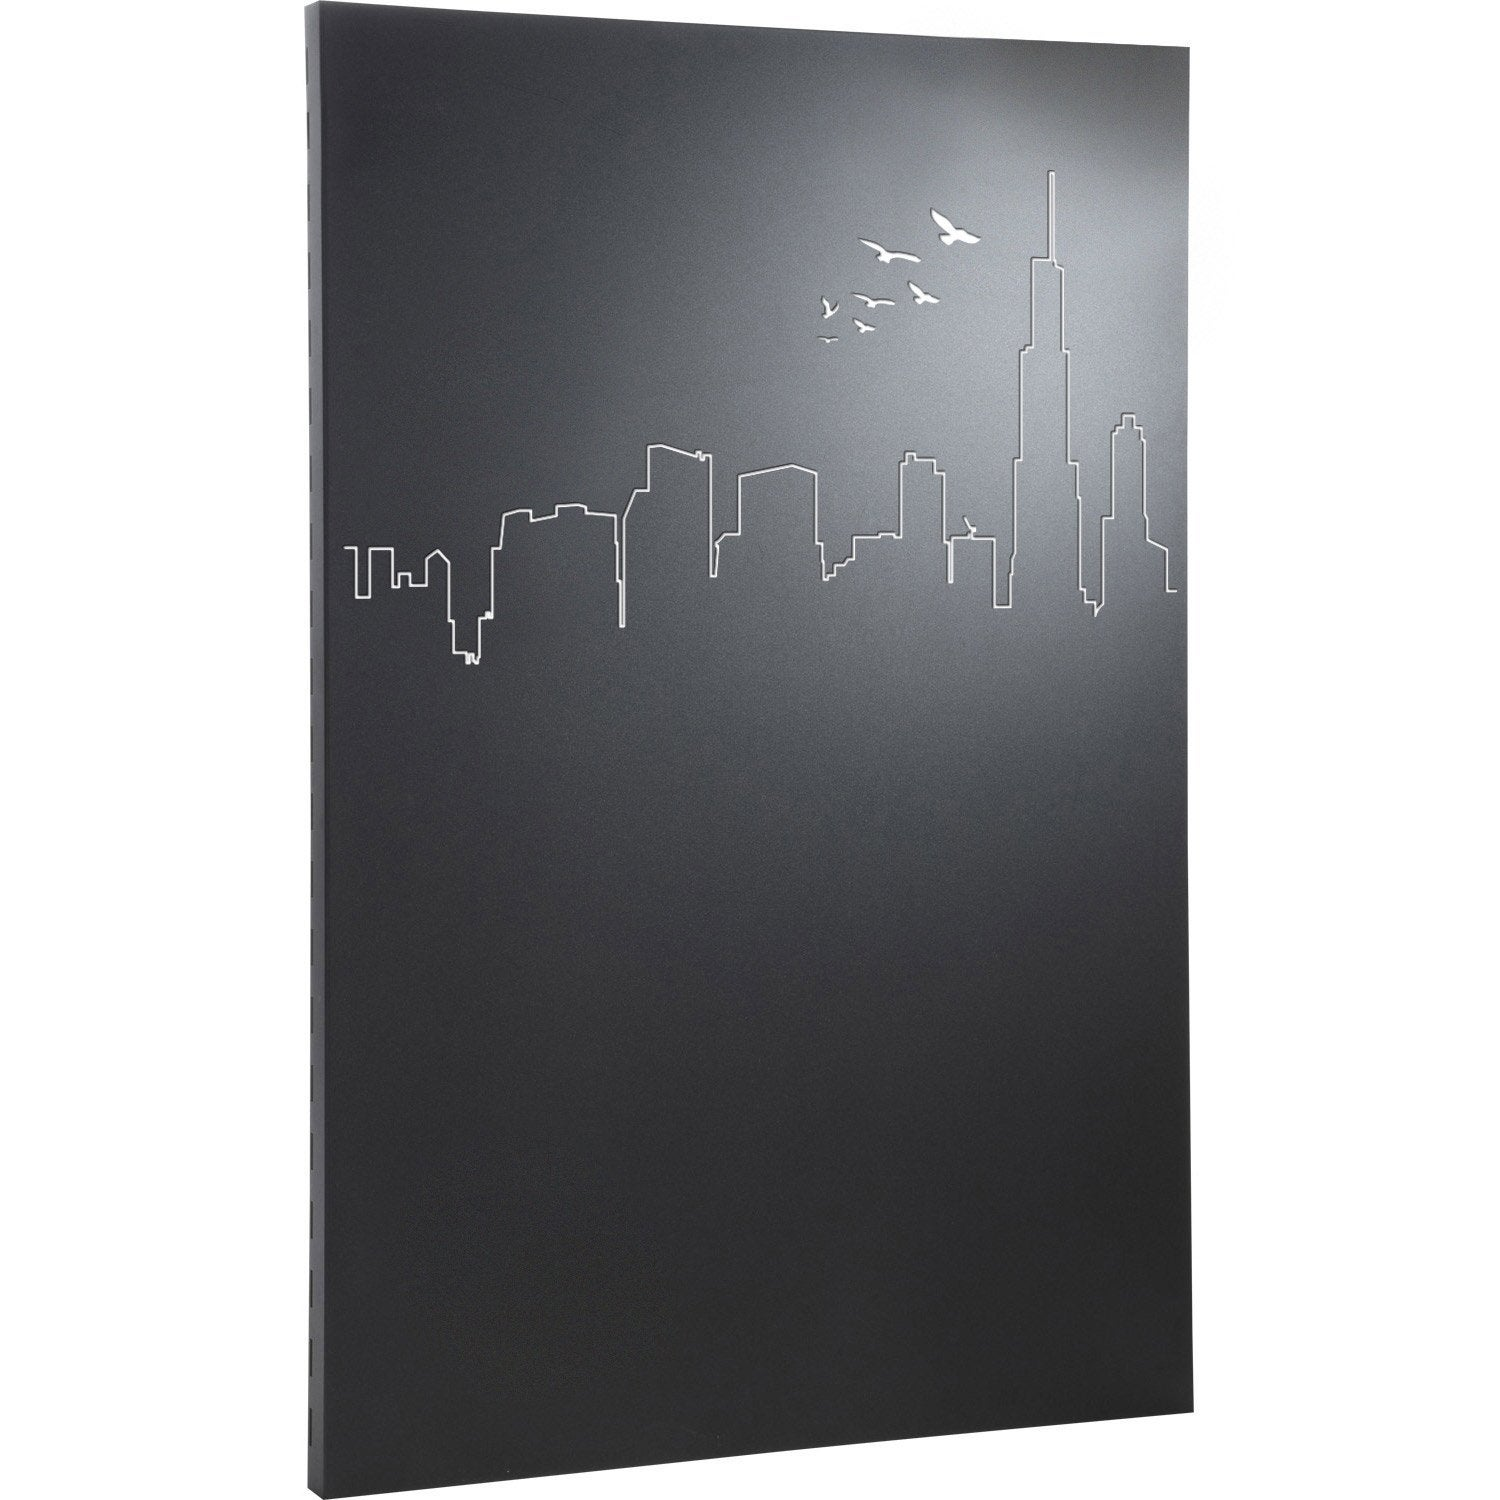 Plaque de protection murale equation citadine - Plaque de protection murale pour cuisine ...